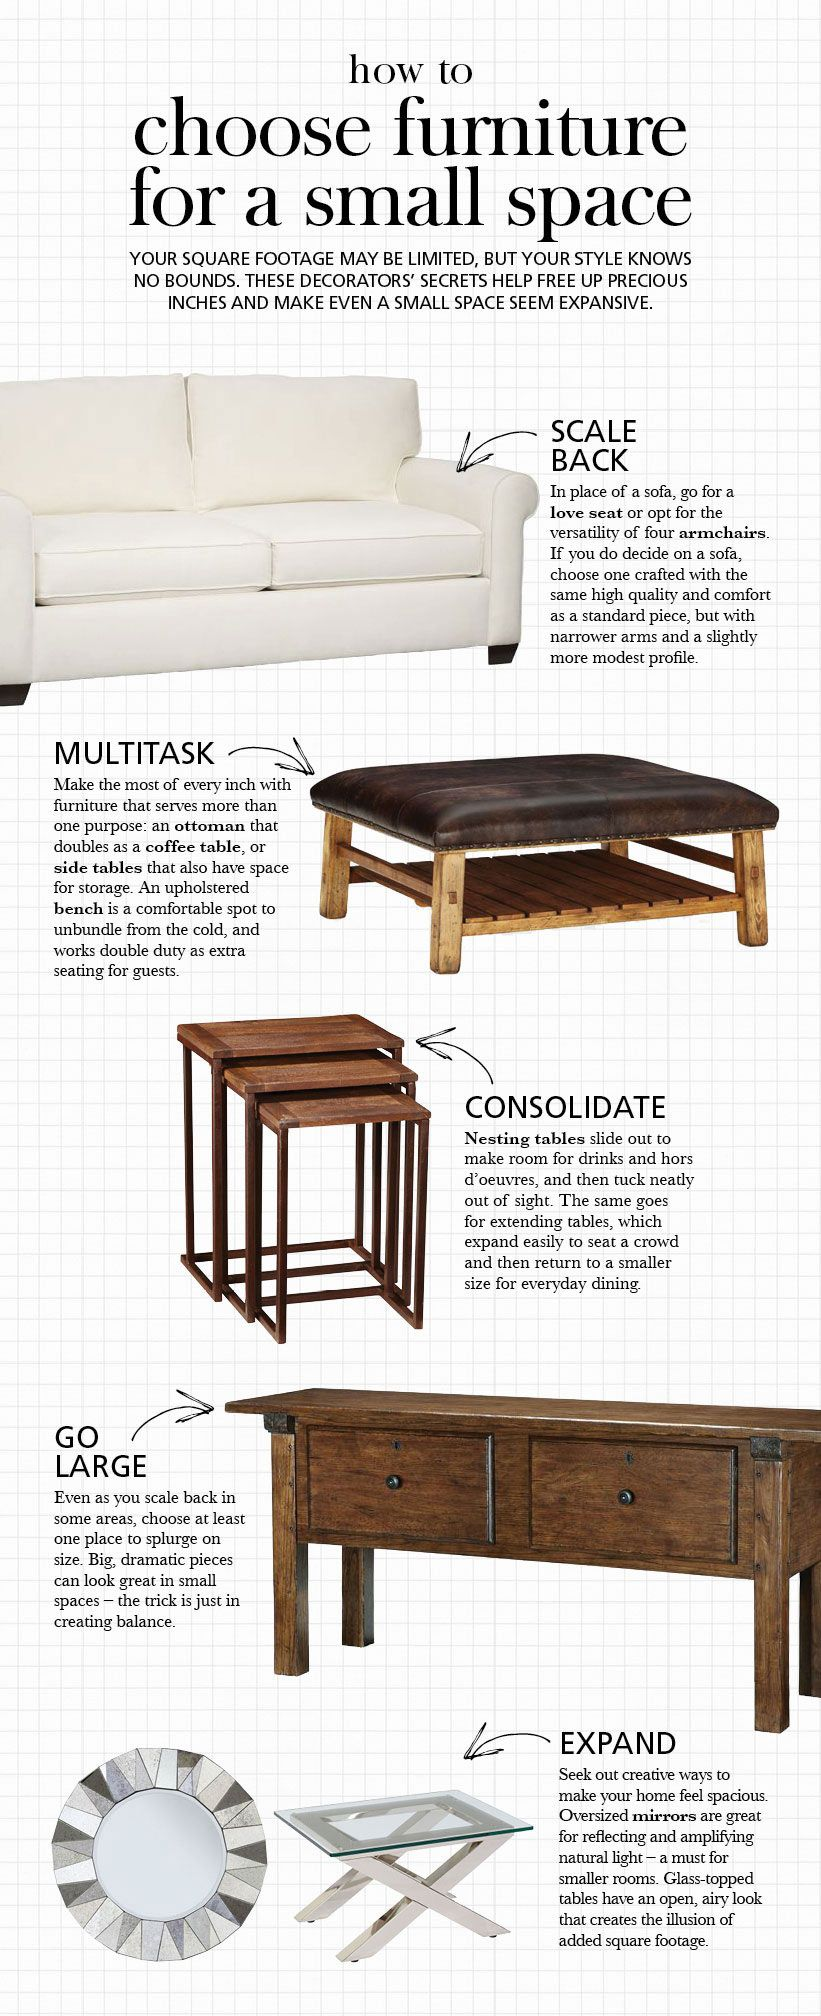 How to choose furniture for a small space pottery barn for Pottery barn small spaces furniture